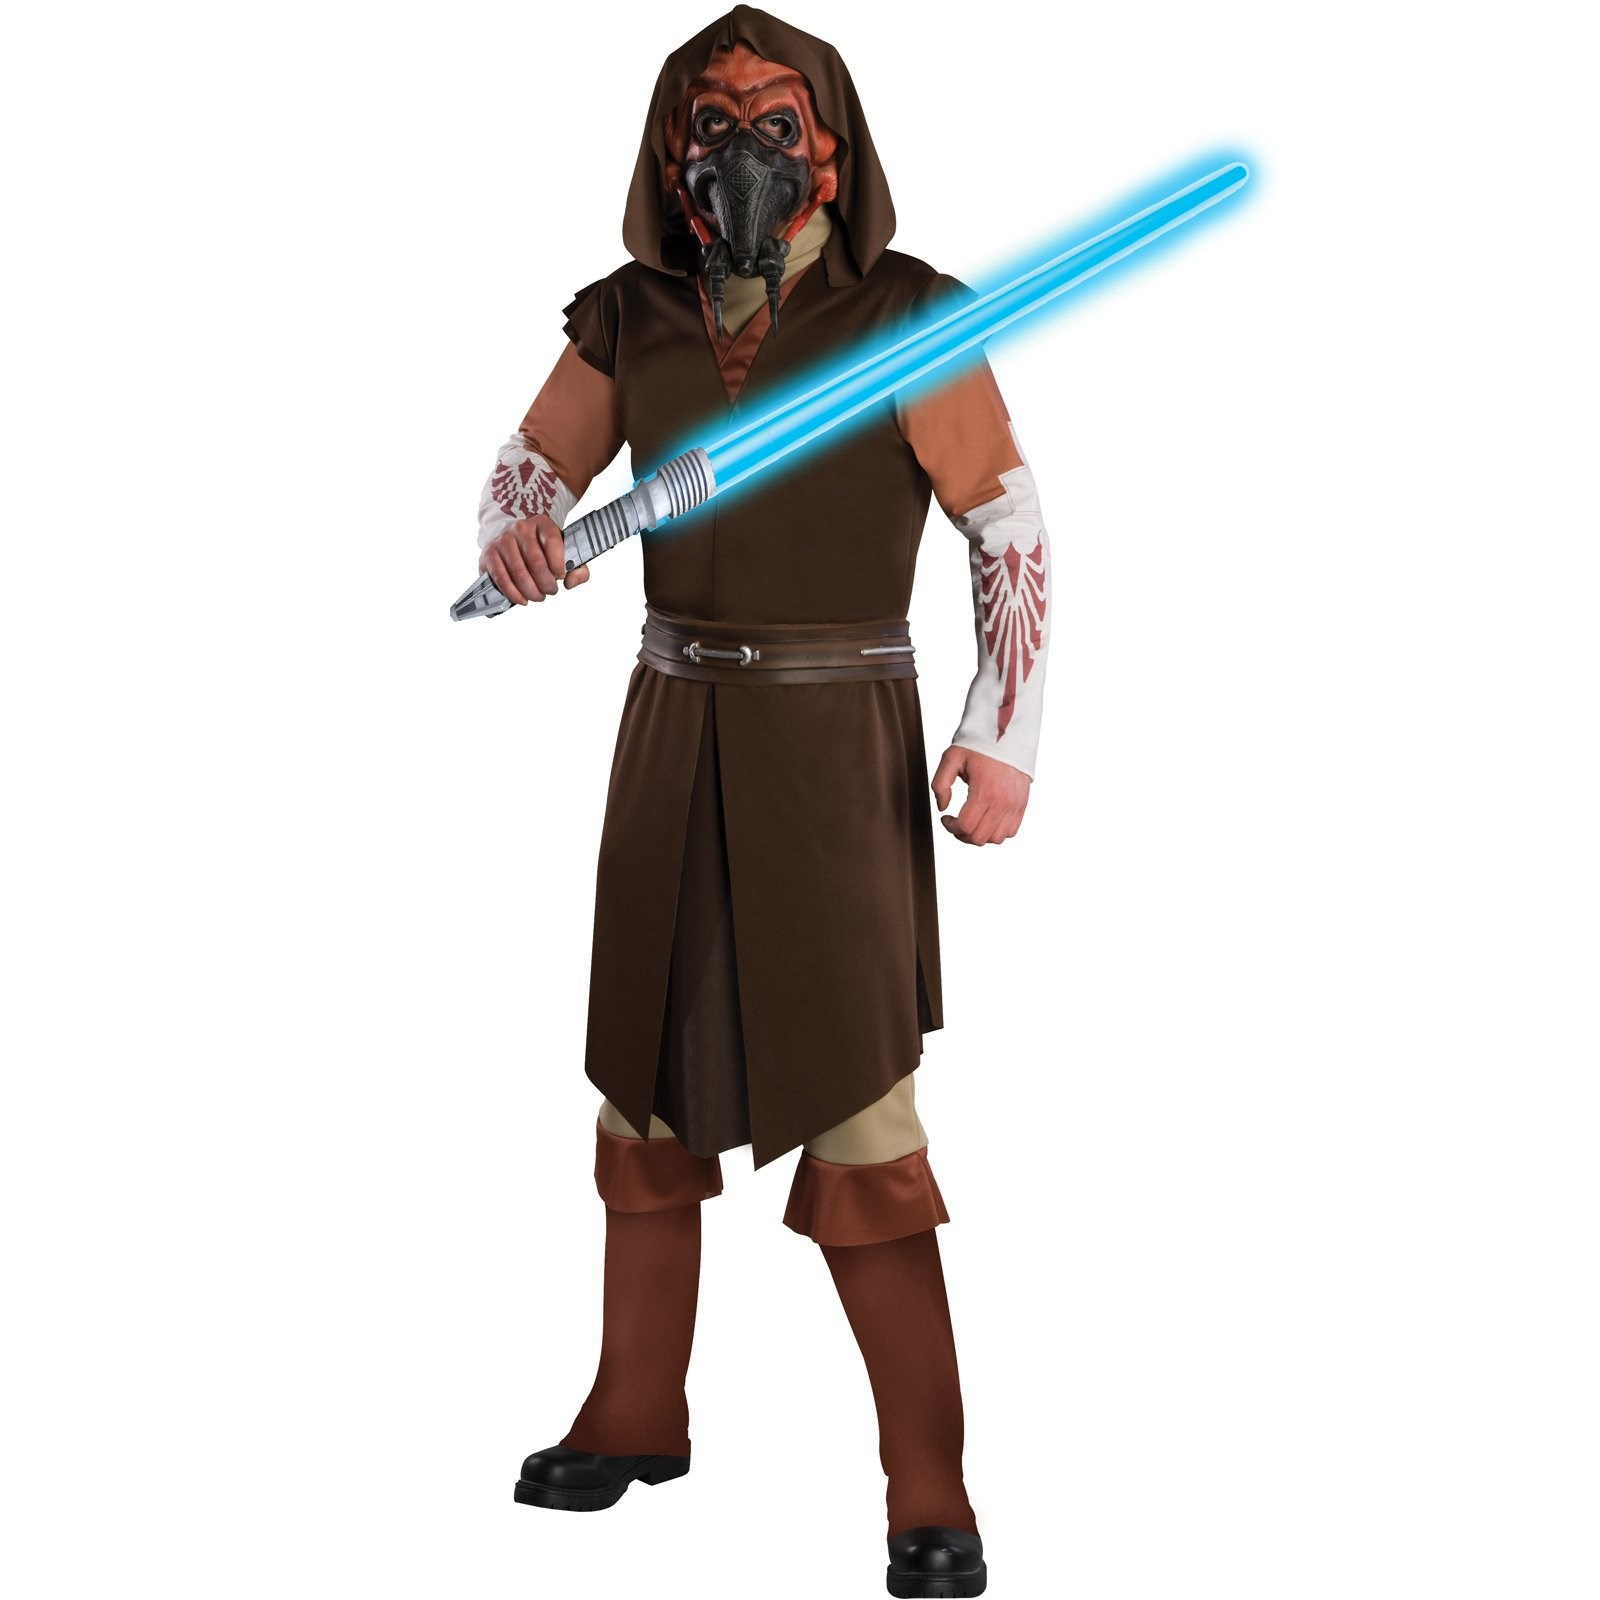 Star Wars Clone Wars Deluxe Plo Koon Adult Costume – Clearance Size XL